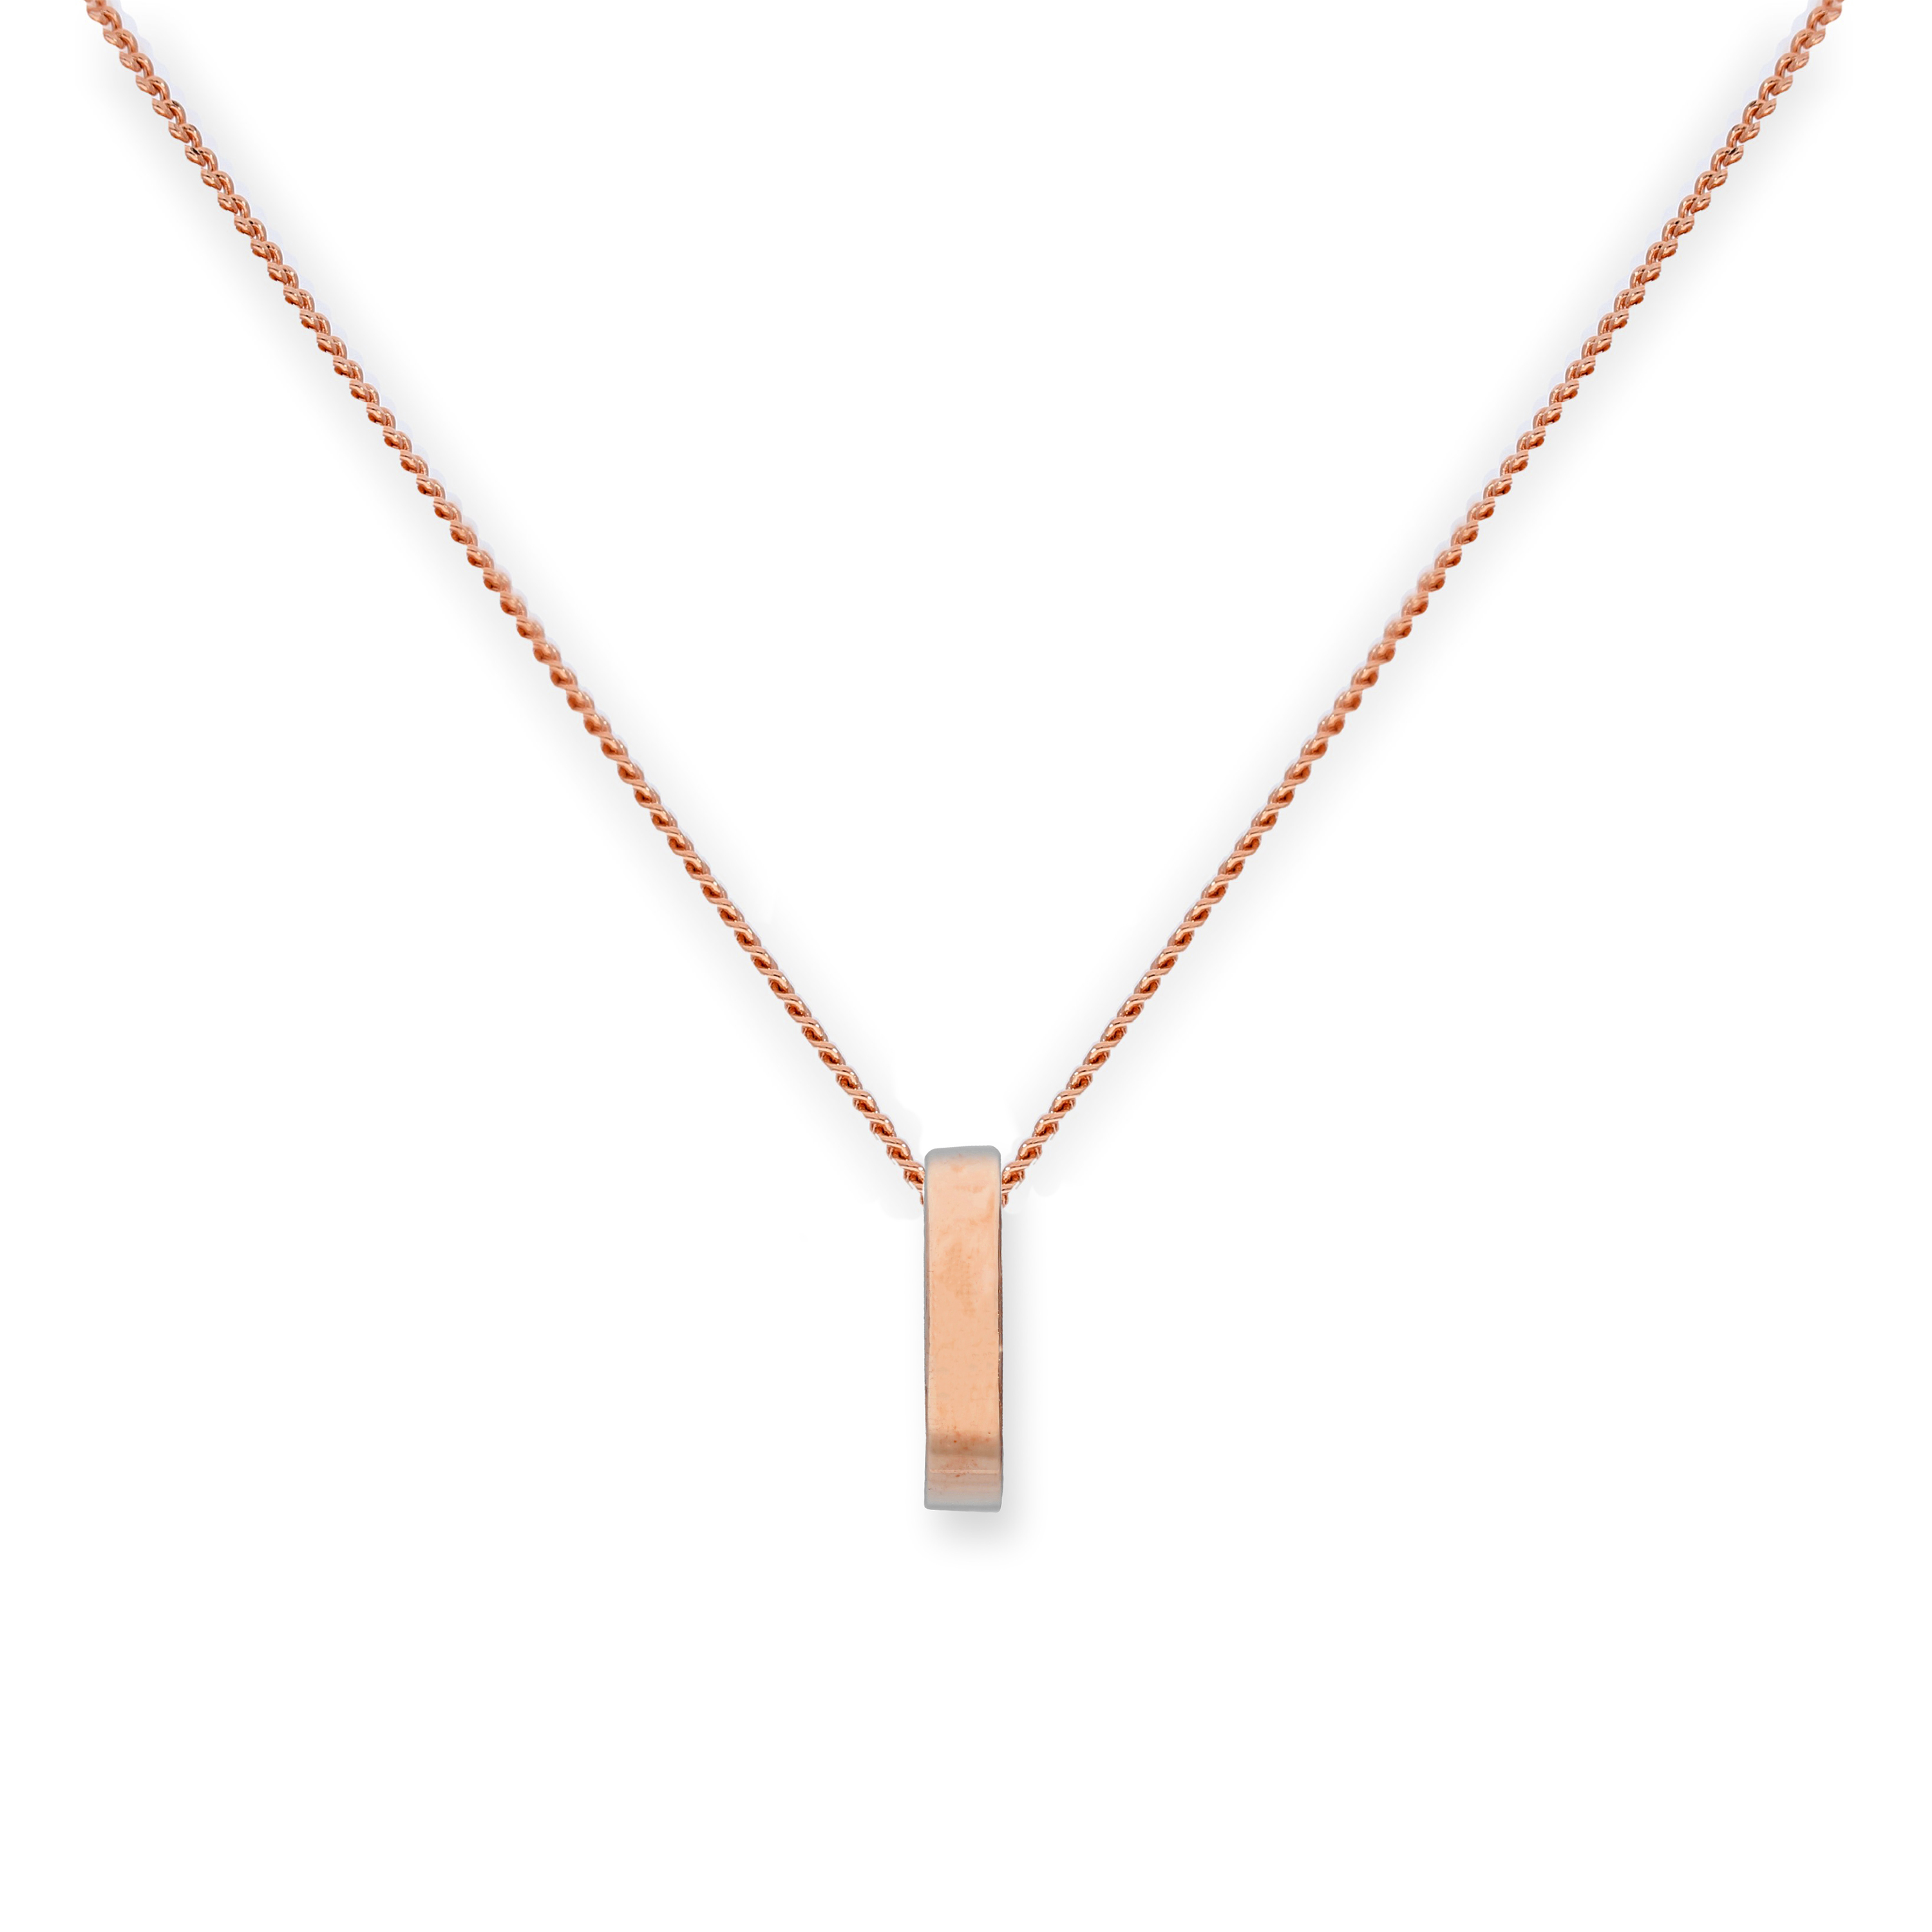 An image of 9ct Rose Gold Karma Circle Pendant Necklace 16 - 18 Inches